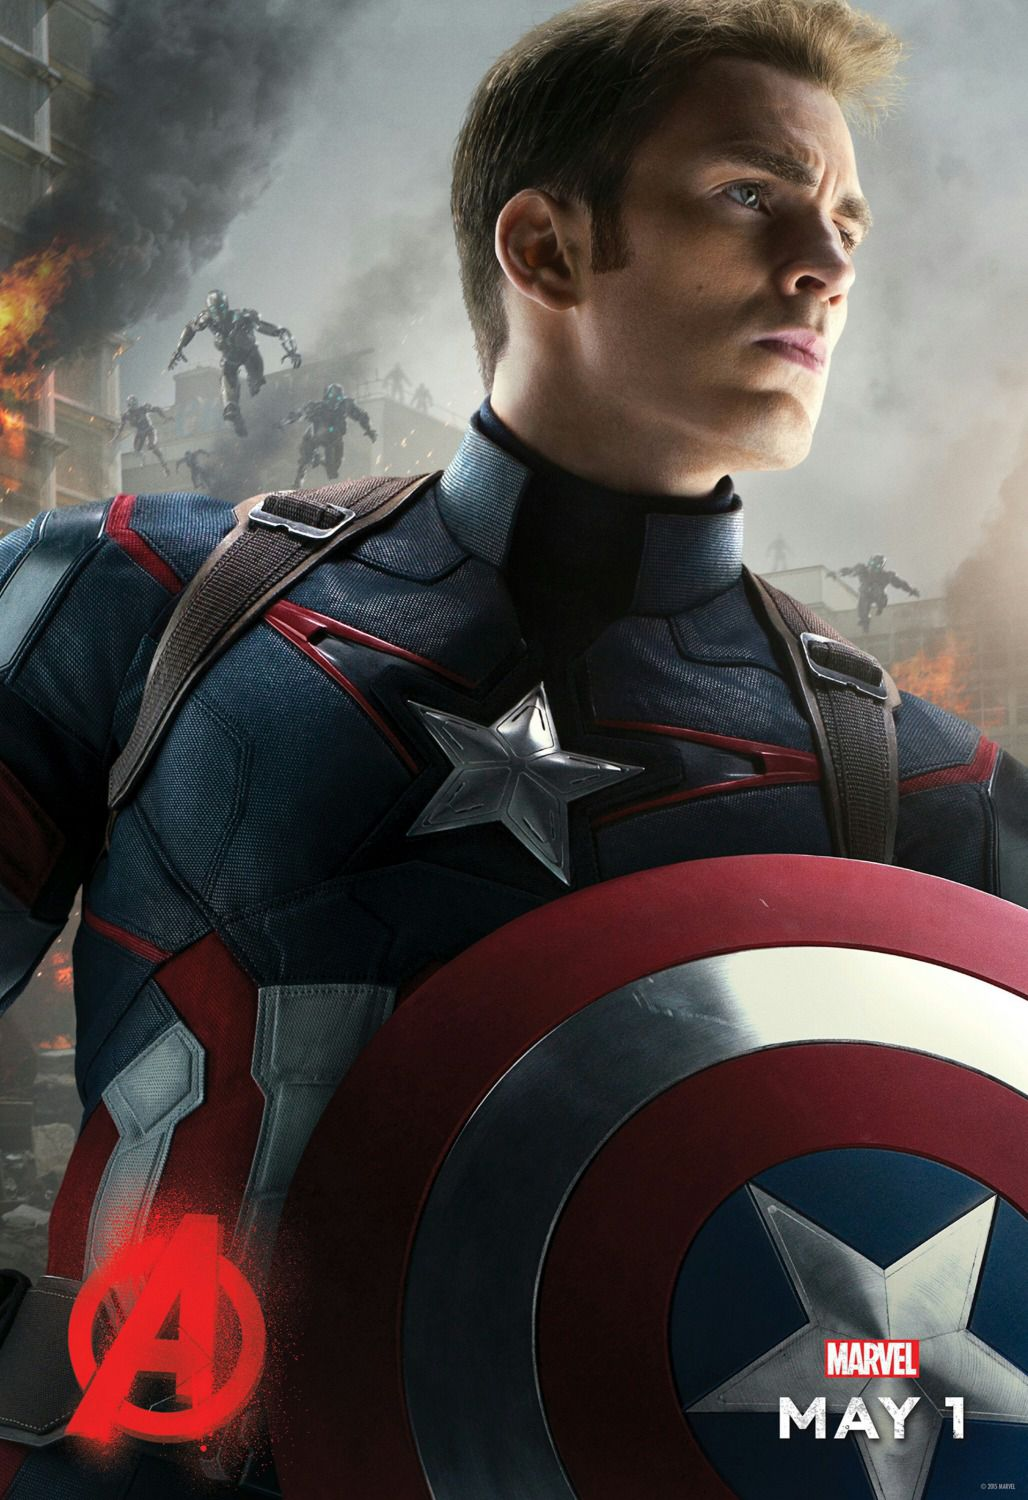 Avengers 2 - Age of Ultron . poster - Captain America